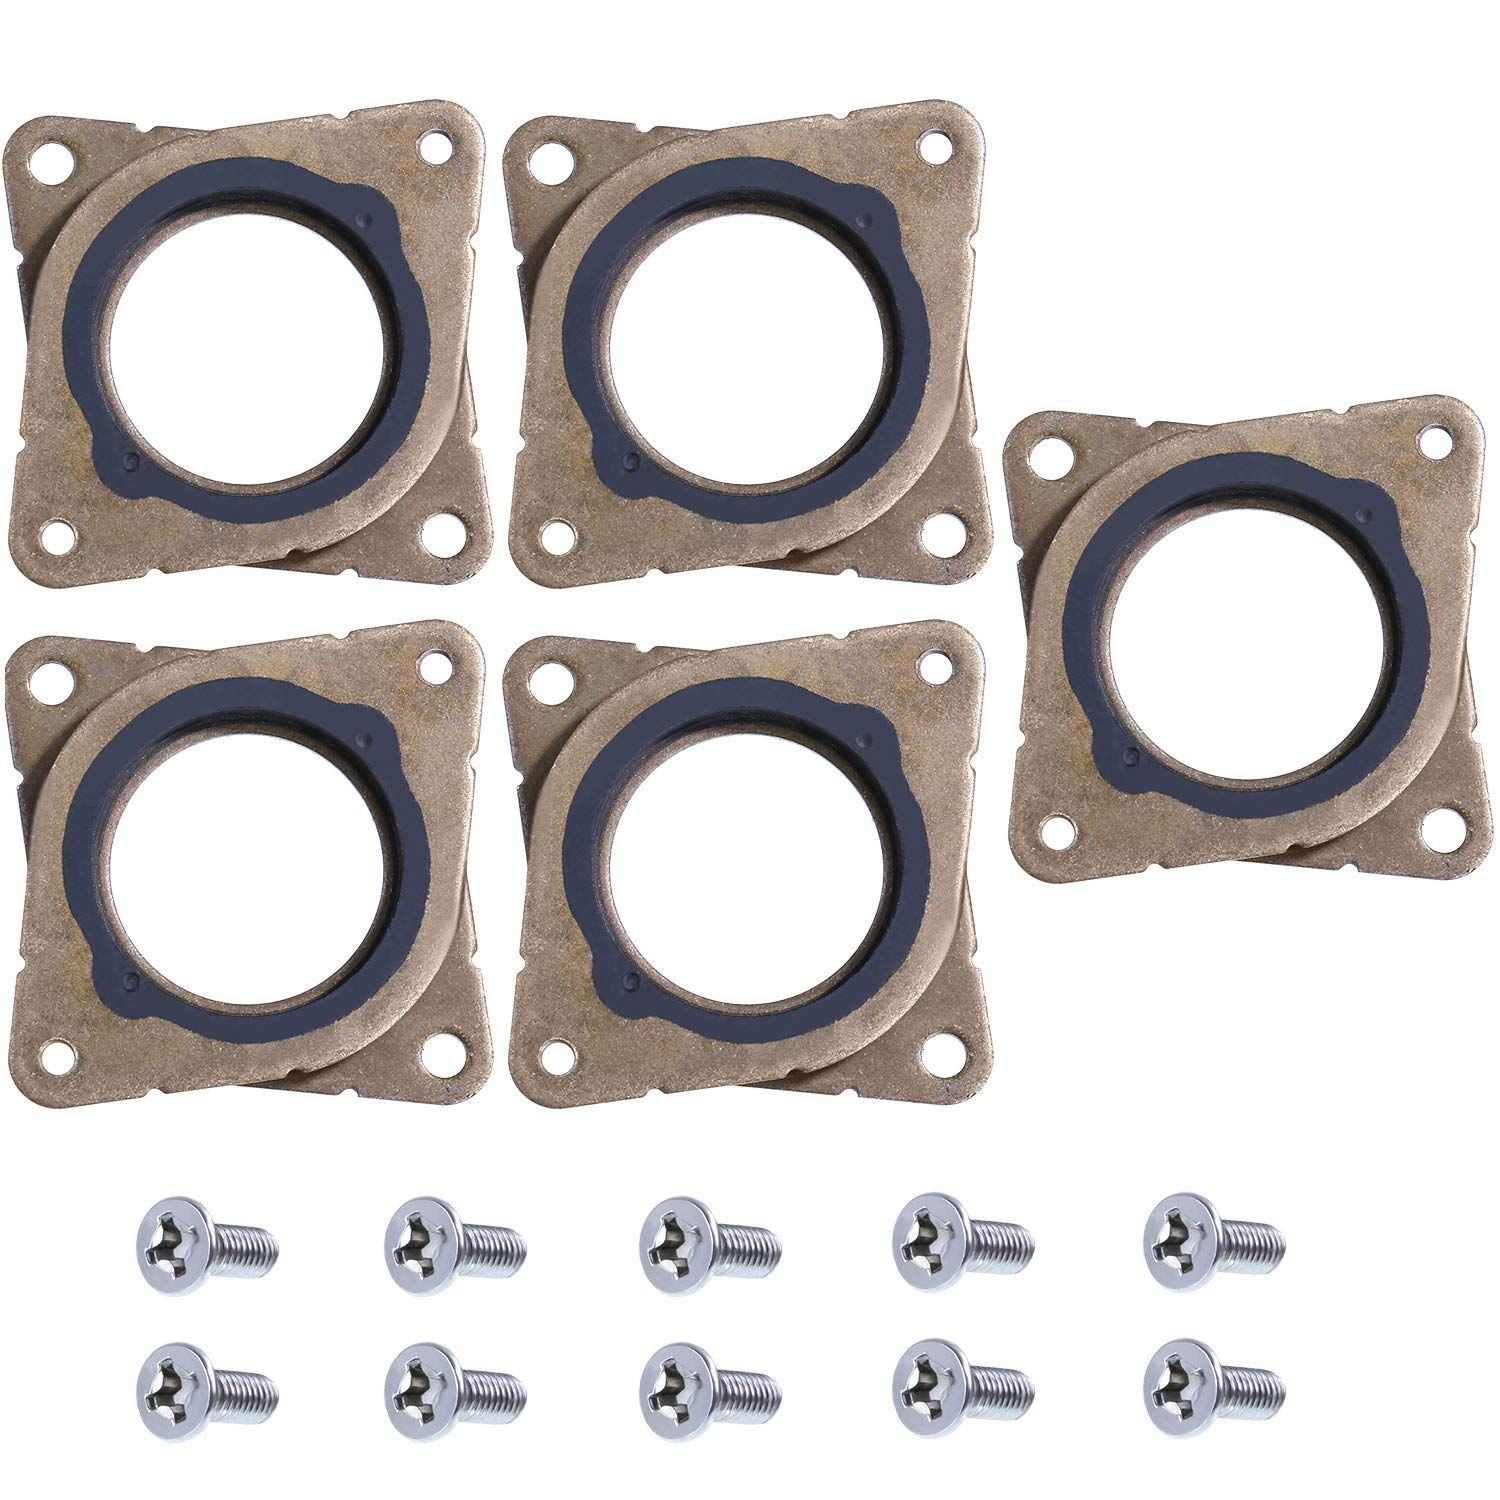 5 Pieces Stepper Motor Steel and Rubber Vibration Damper and 10 Pieces M3 Screws for CNC, NEMA 17 3D Printer (Color 2) Gejoy